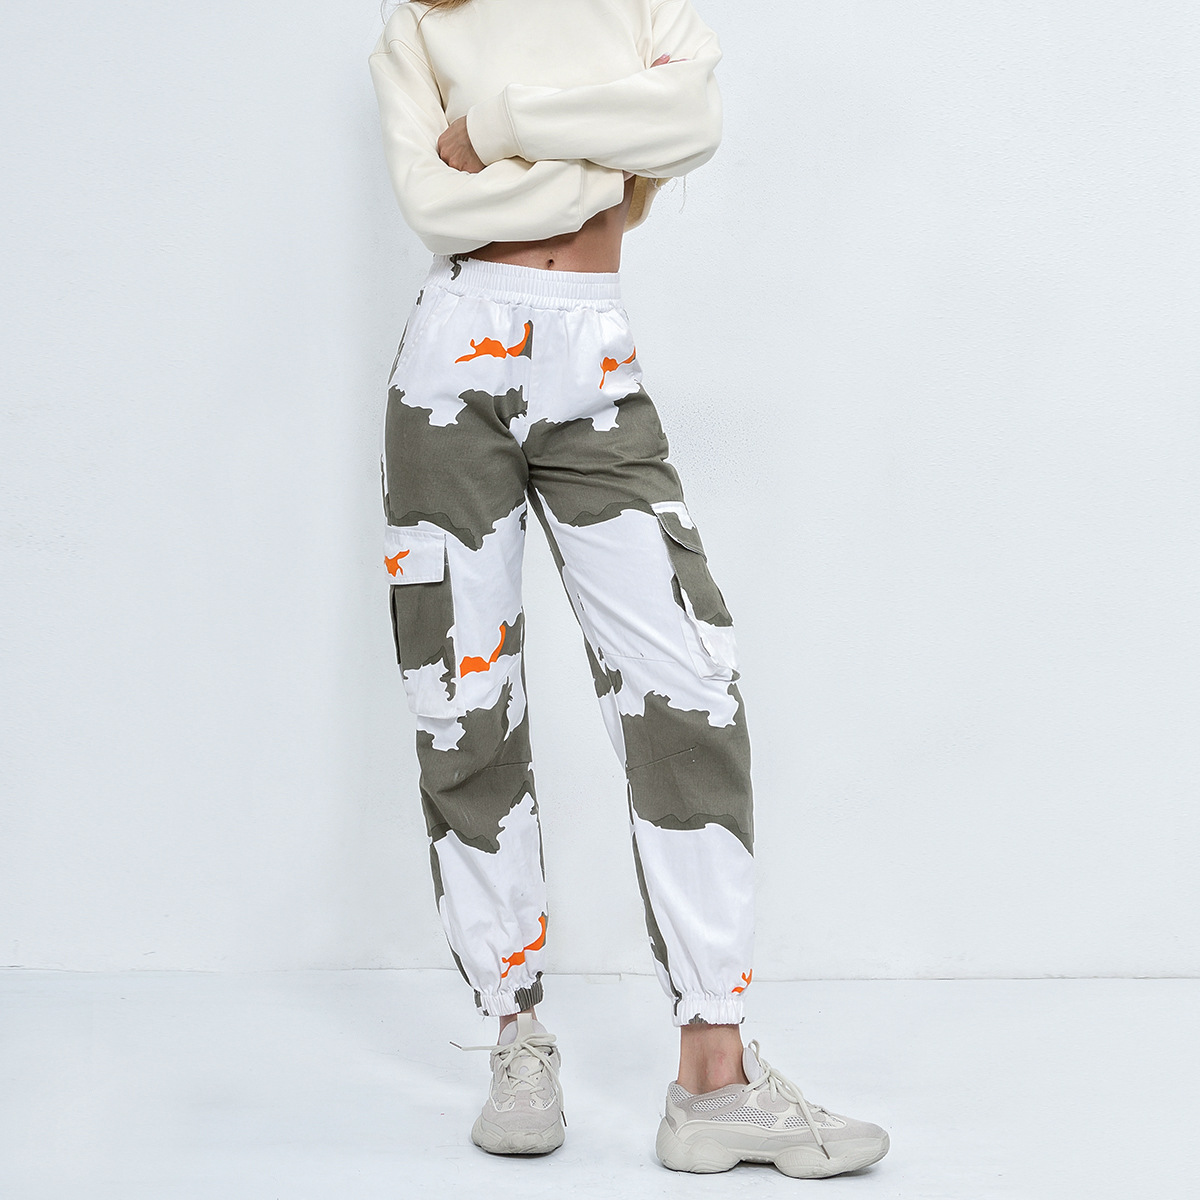 Liva Girl Women High Waist Camouflage Pants Fashion Pantalon Femme Trouser Long Sweatpants Streetwear Pockets Camo Pants Jogger